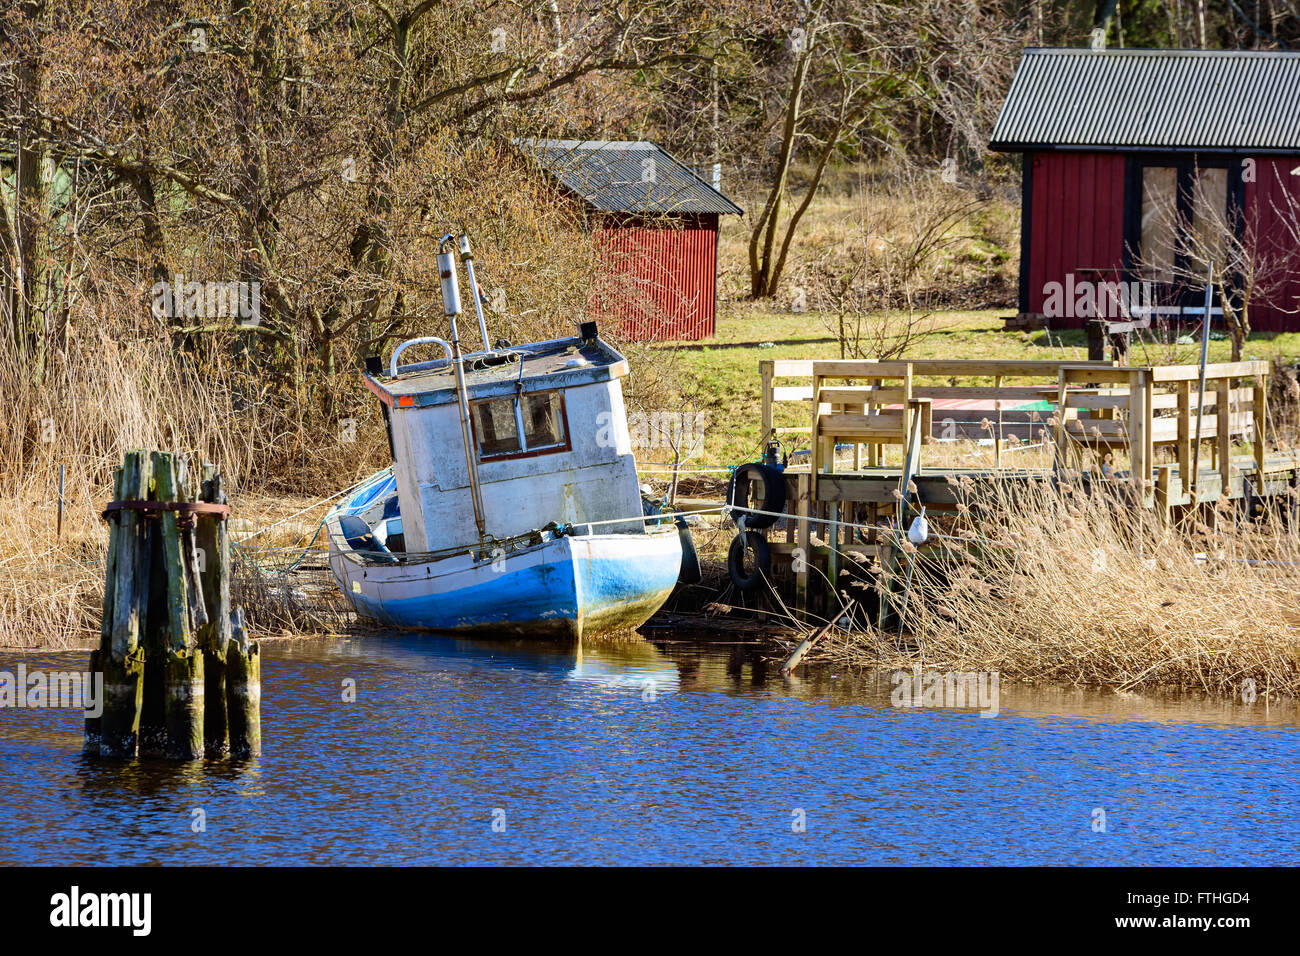 Old Fishing Boat Moored At Seaside Beside A Wooden Pier Close To A Stock Photo Alamy